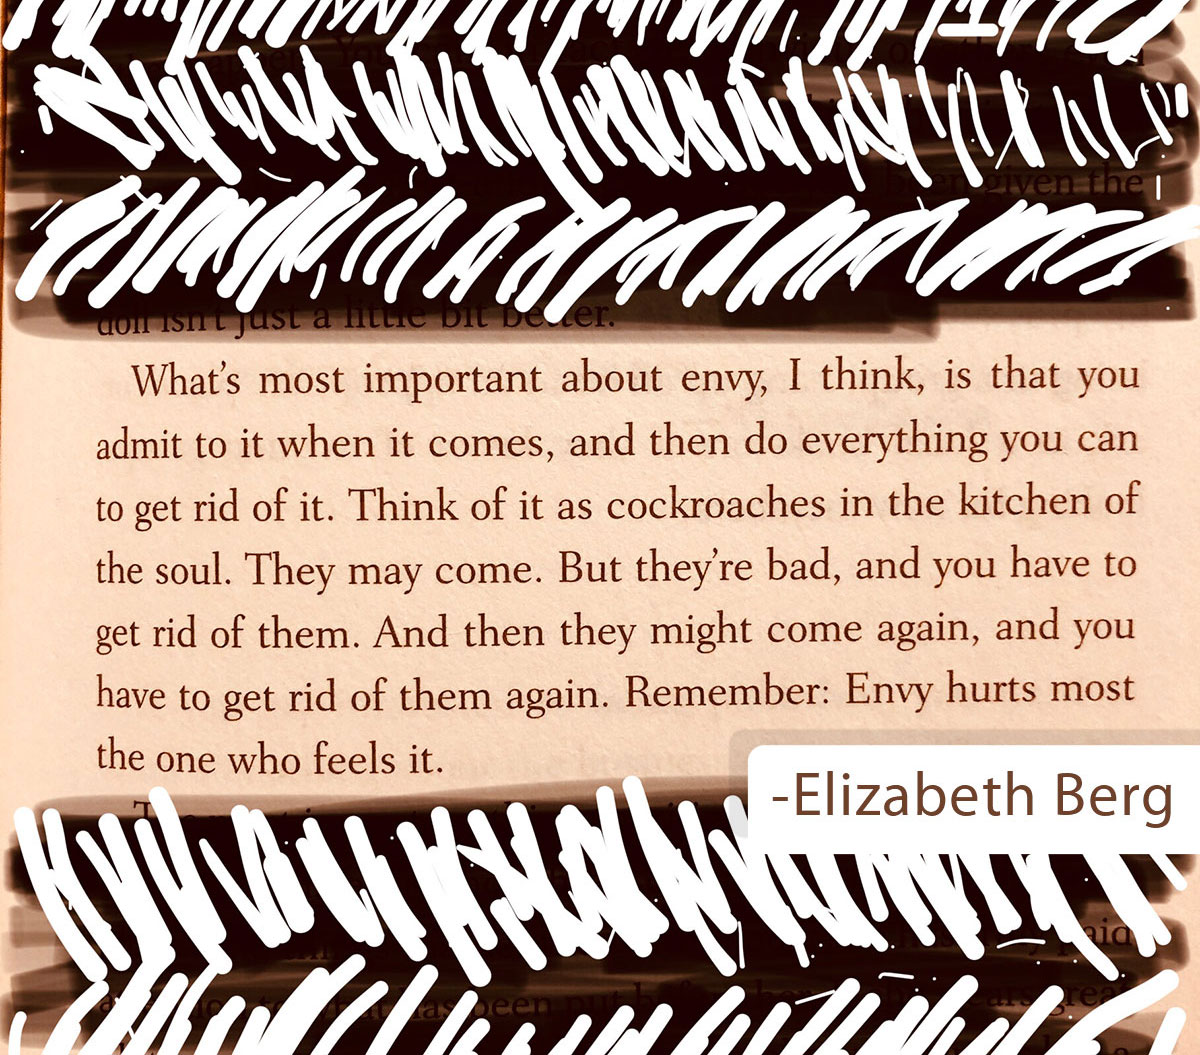 "Elizabeth Berg quote that describes envy as ""the cockroaches of the soul"""